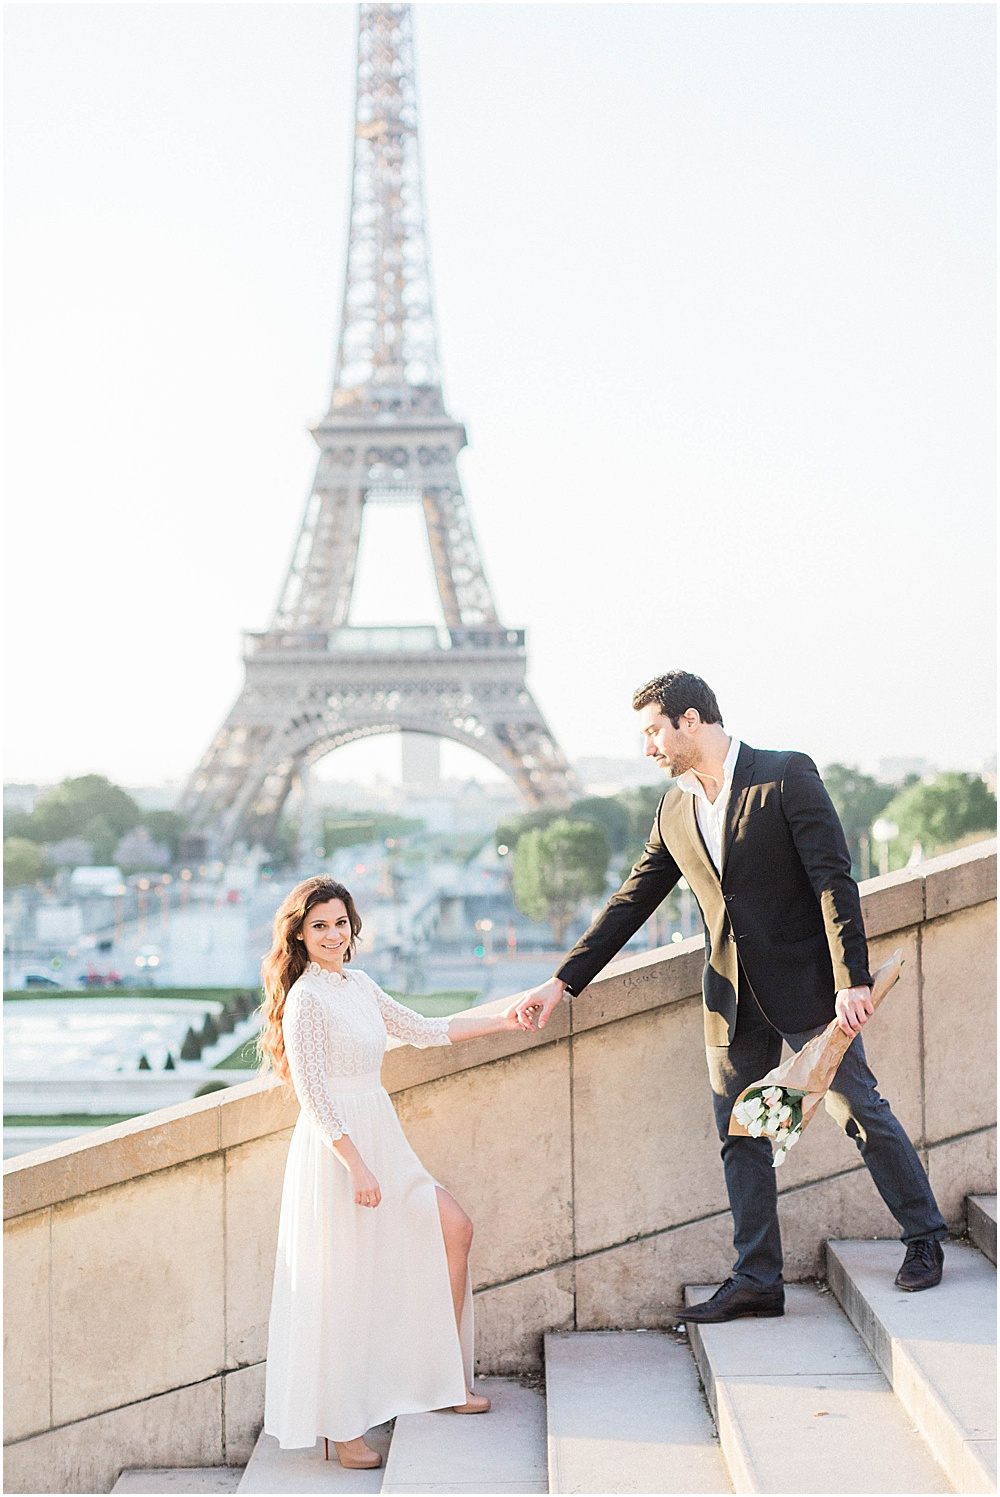 Trocadero_stairs_paris_white_gown_destination_pre_wedding_spring_engagement_session_boston_wedding_photographer_meredith_jane_photography_photo_0224.jpg